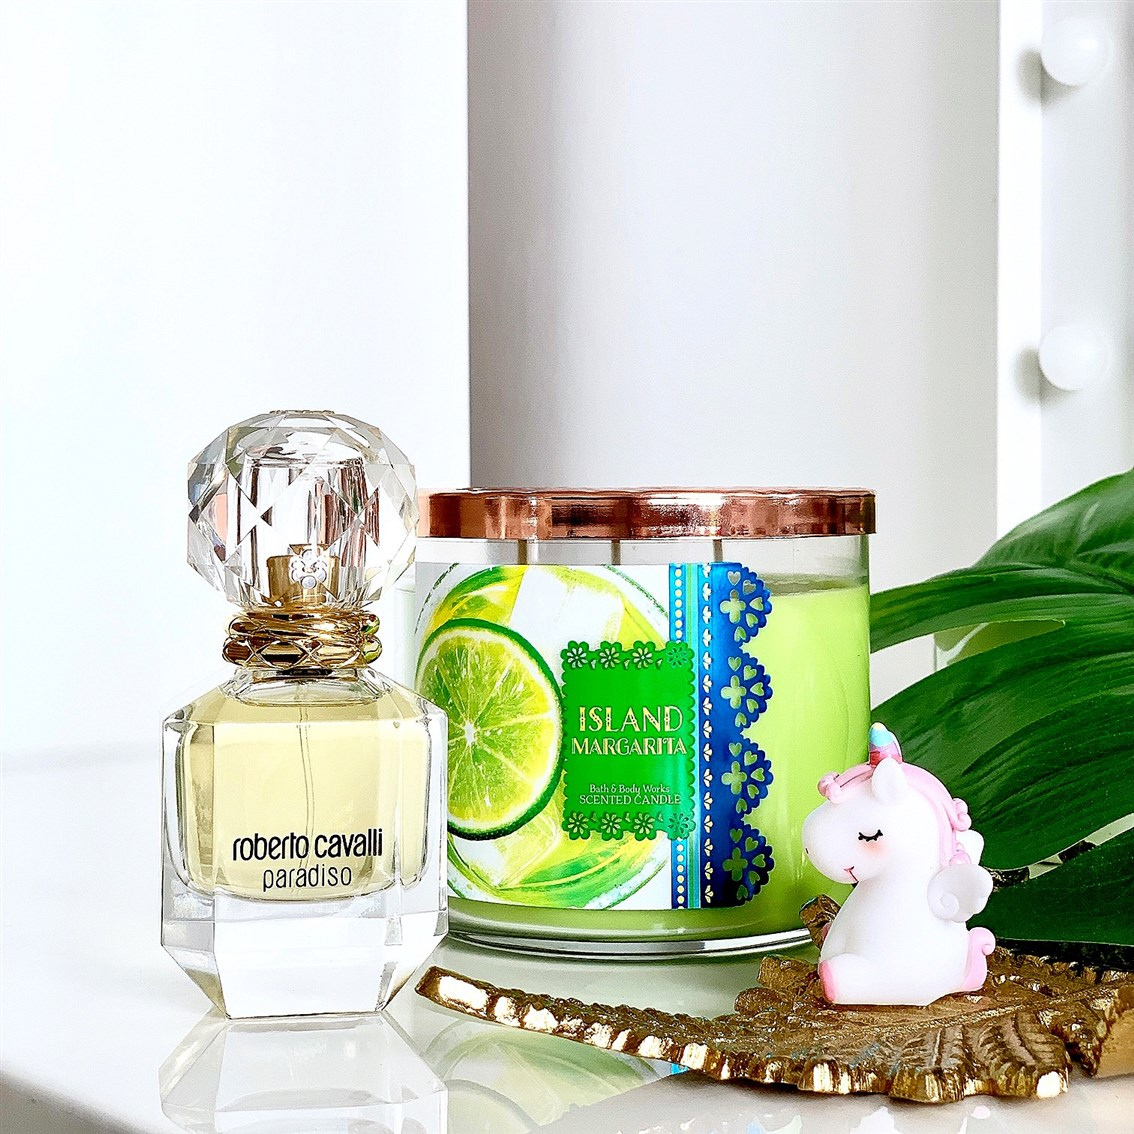 Bath and Body Works Island Margarita